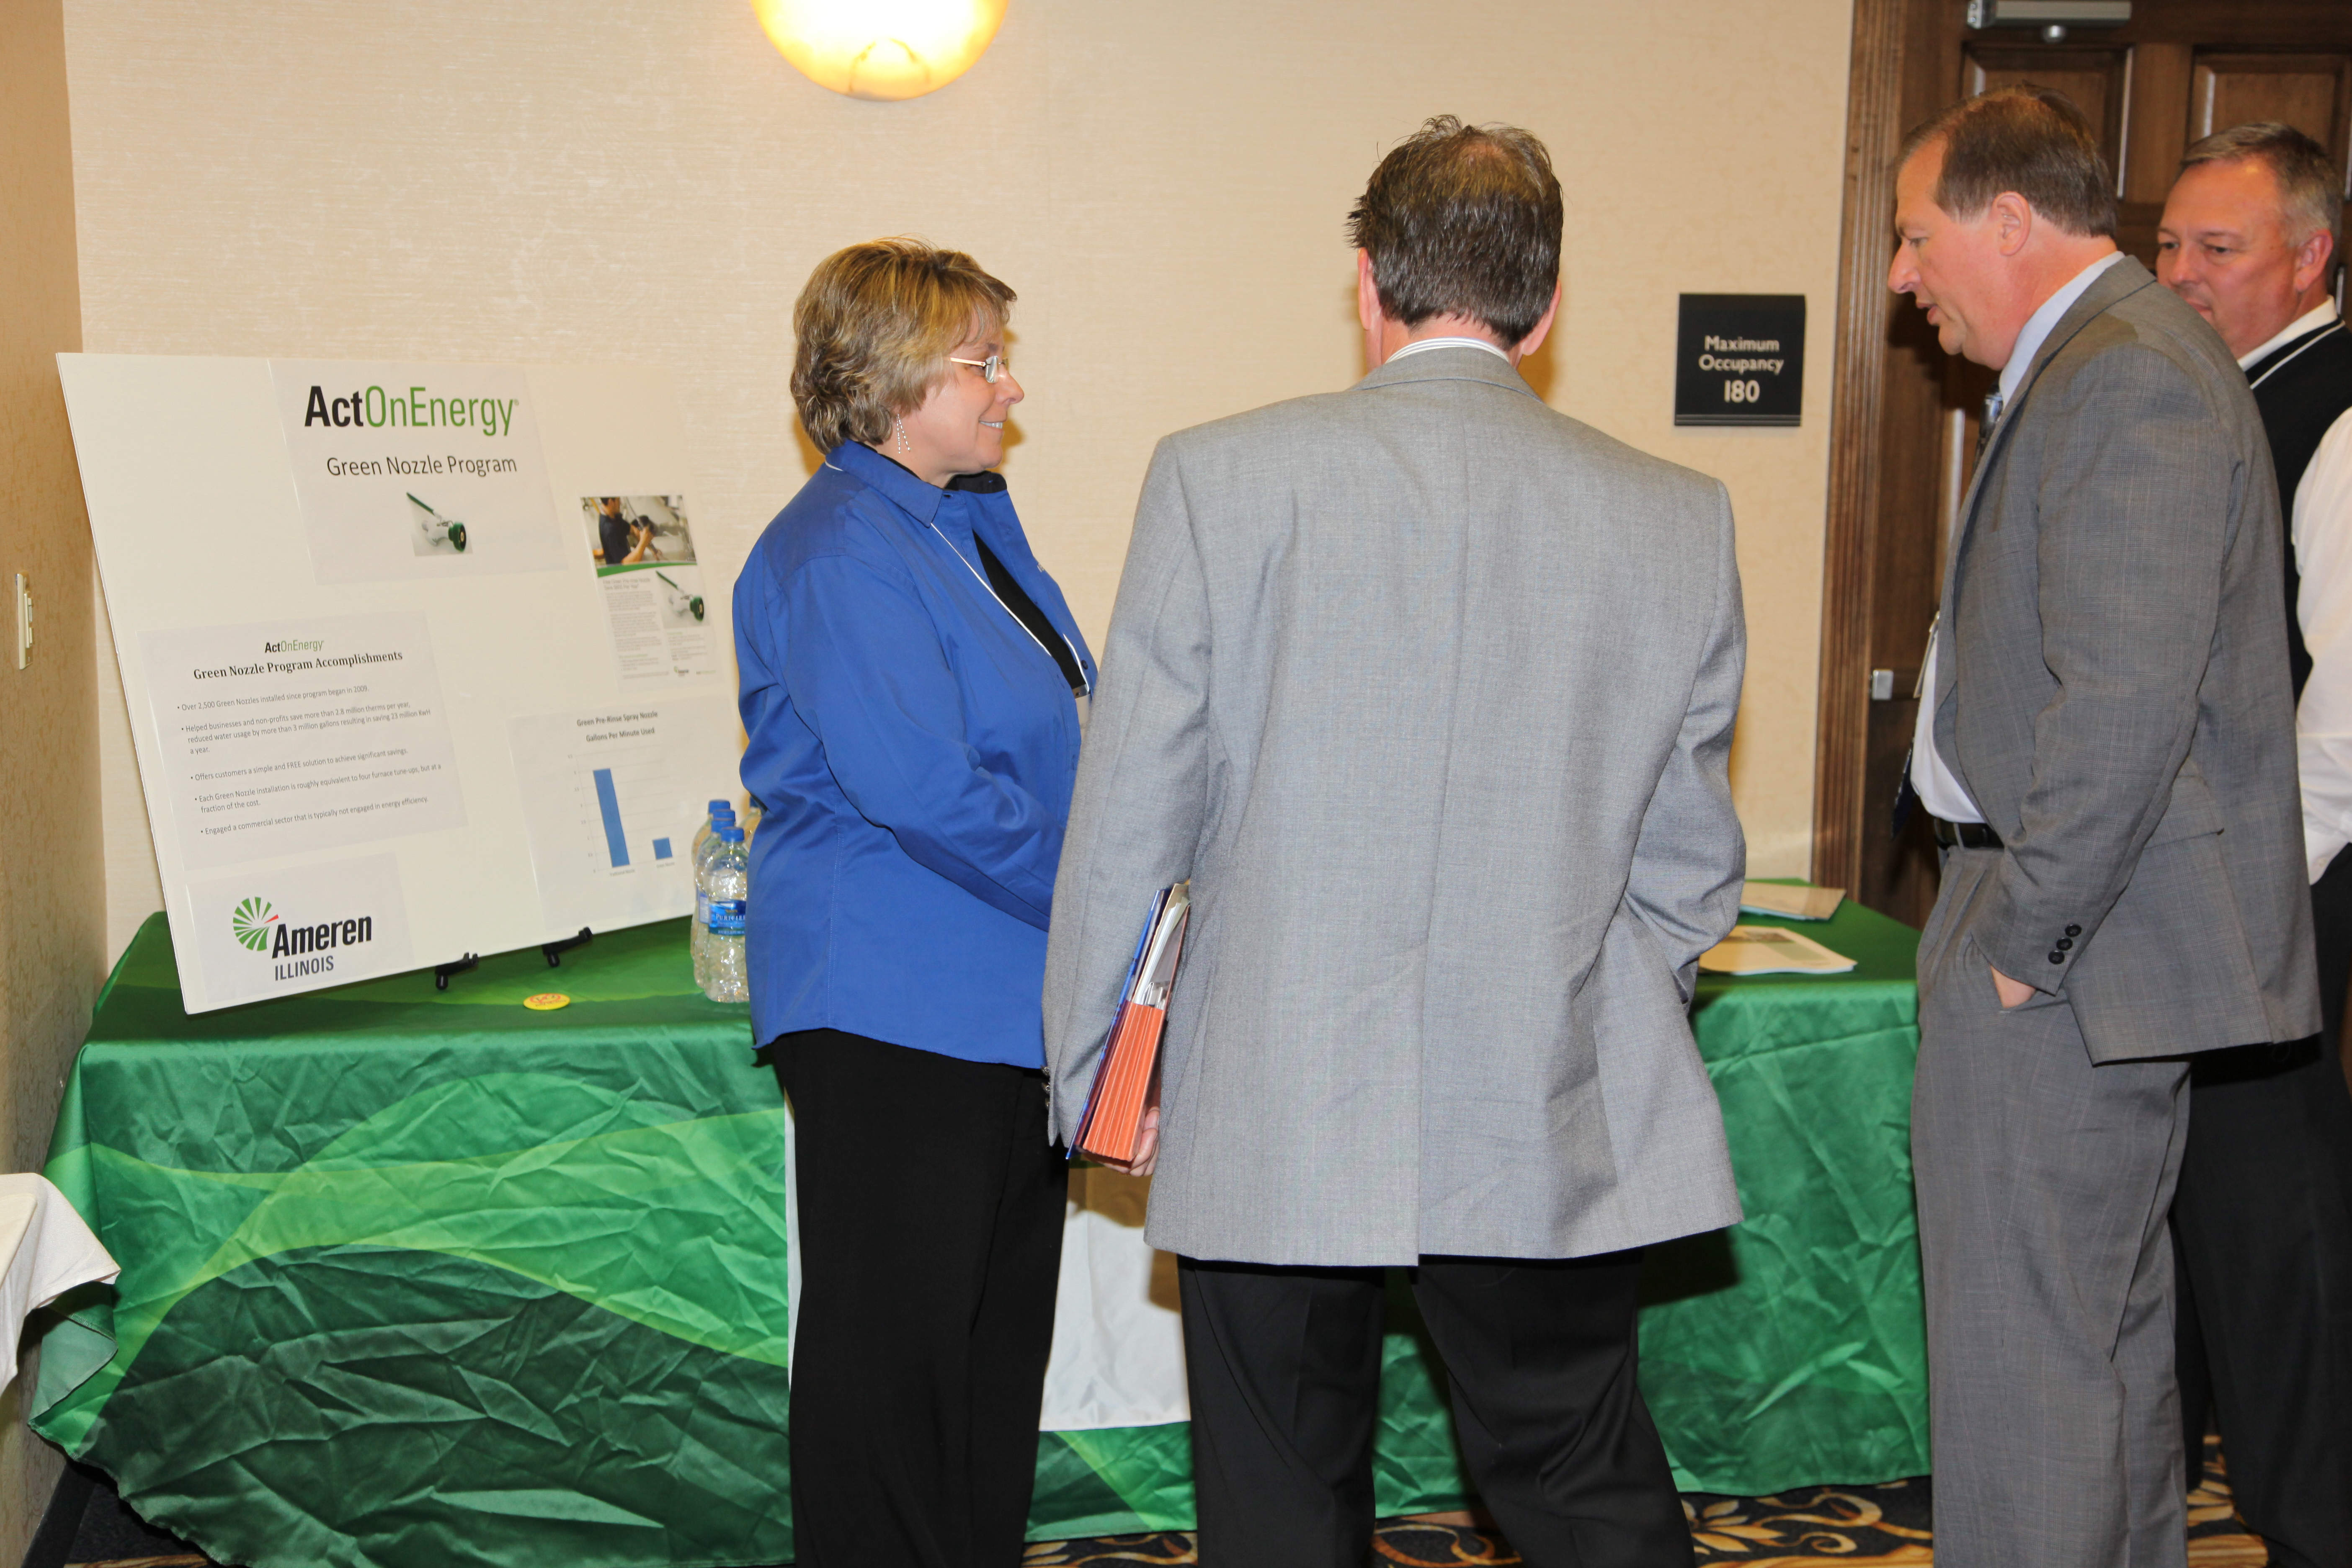 Exhibitors talk during Gov. Awards event